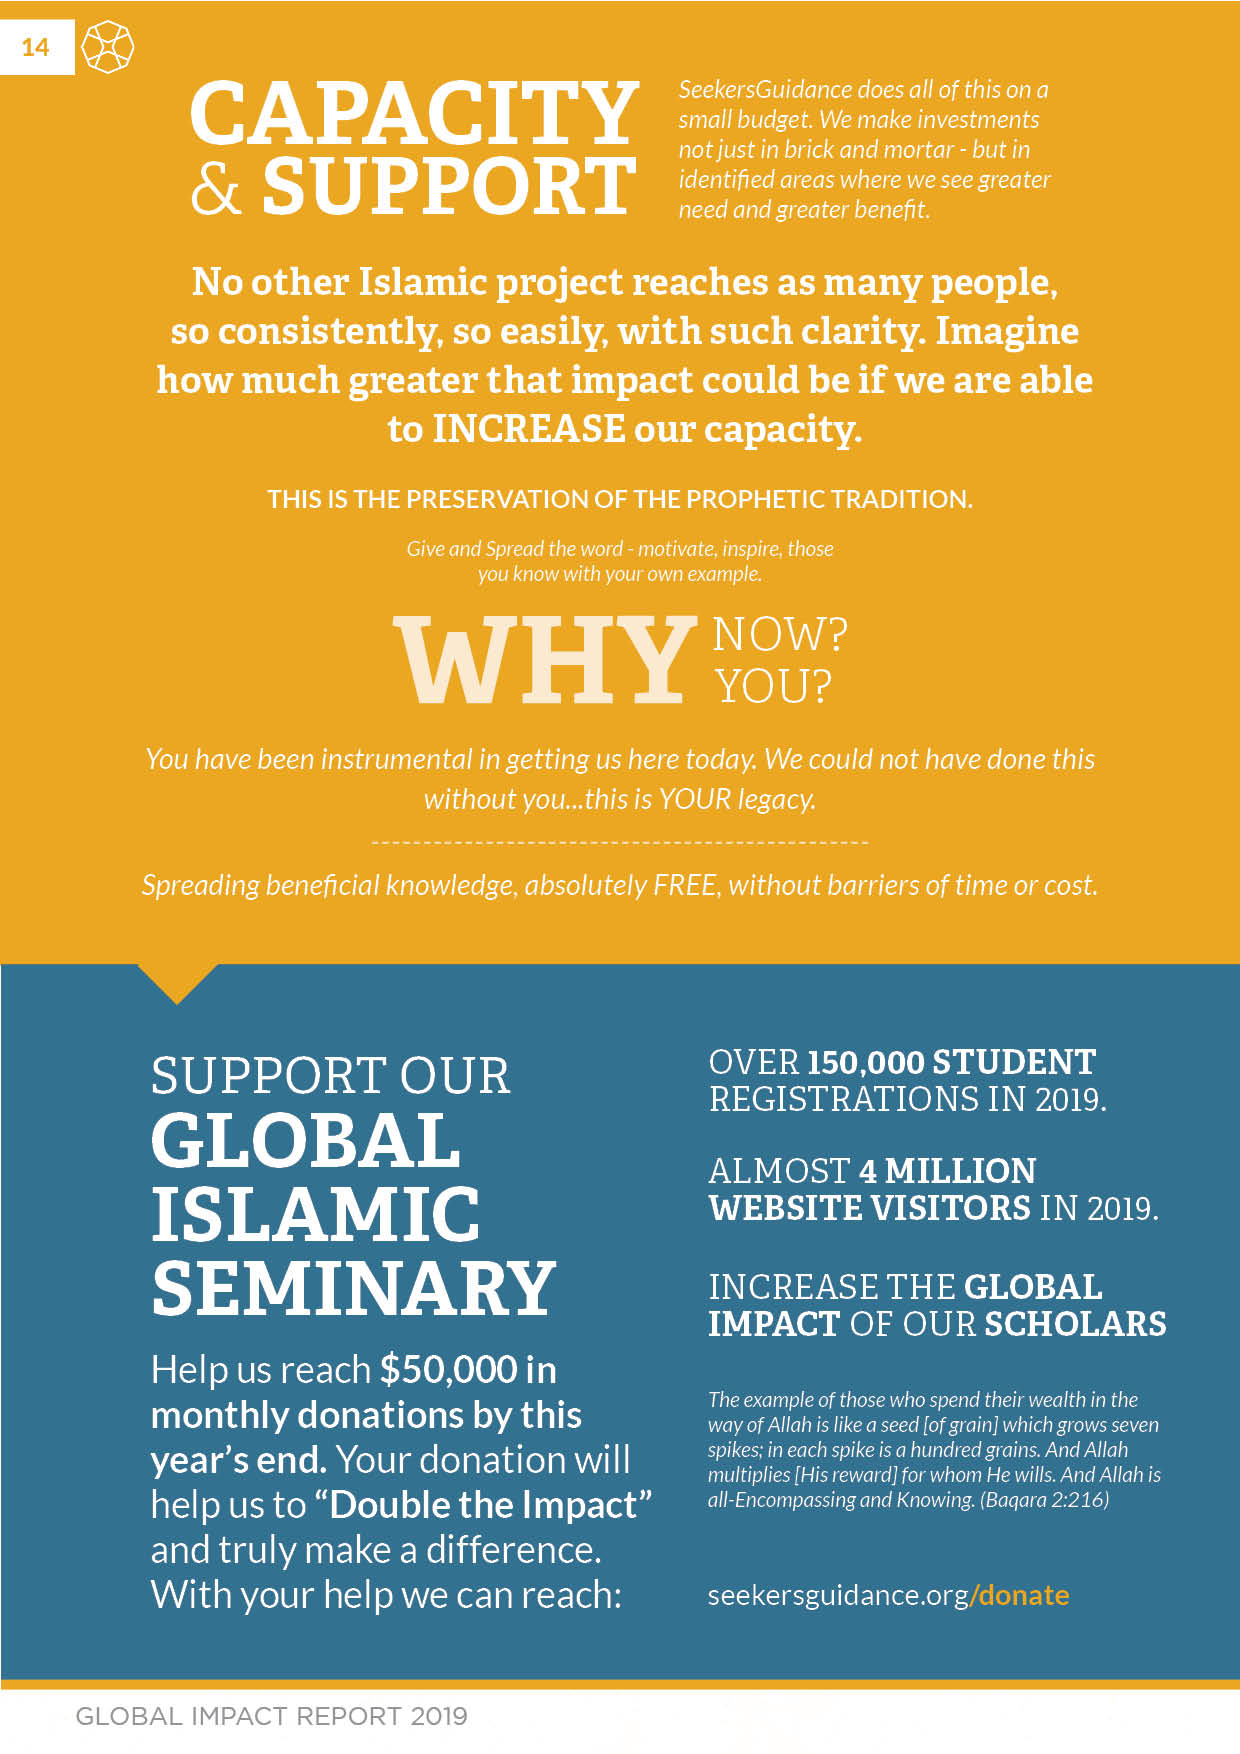 Your support will help to grow this impact